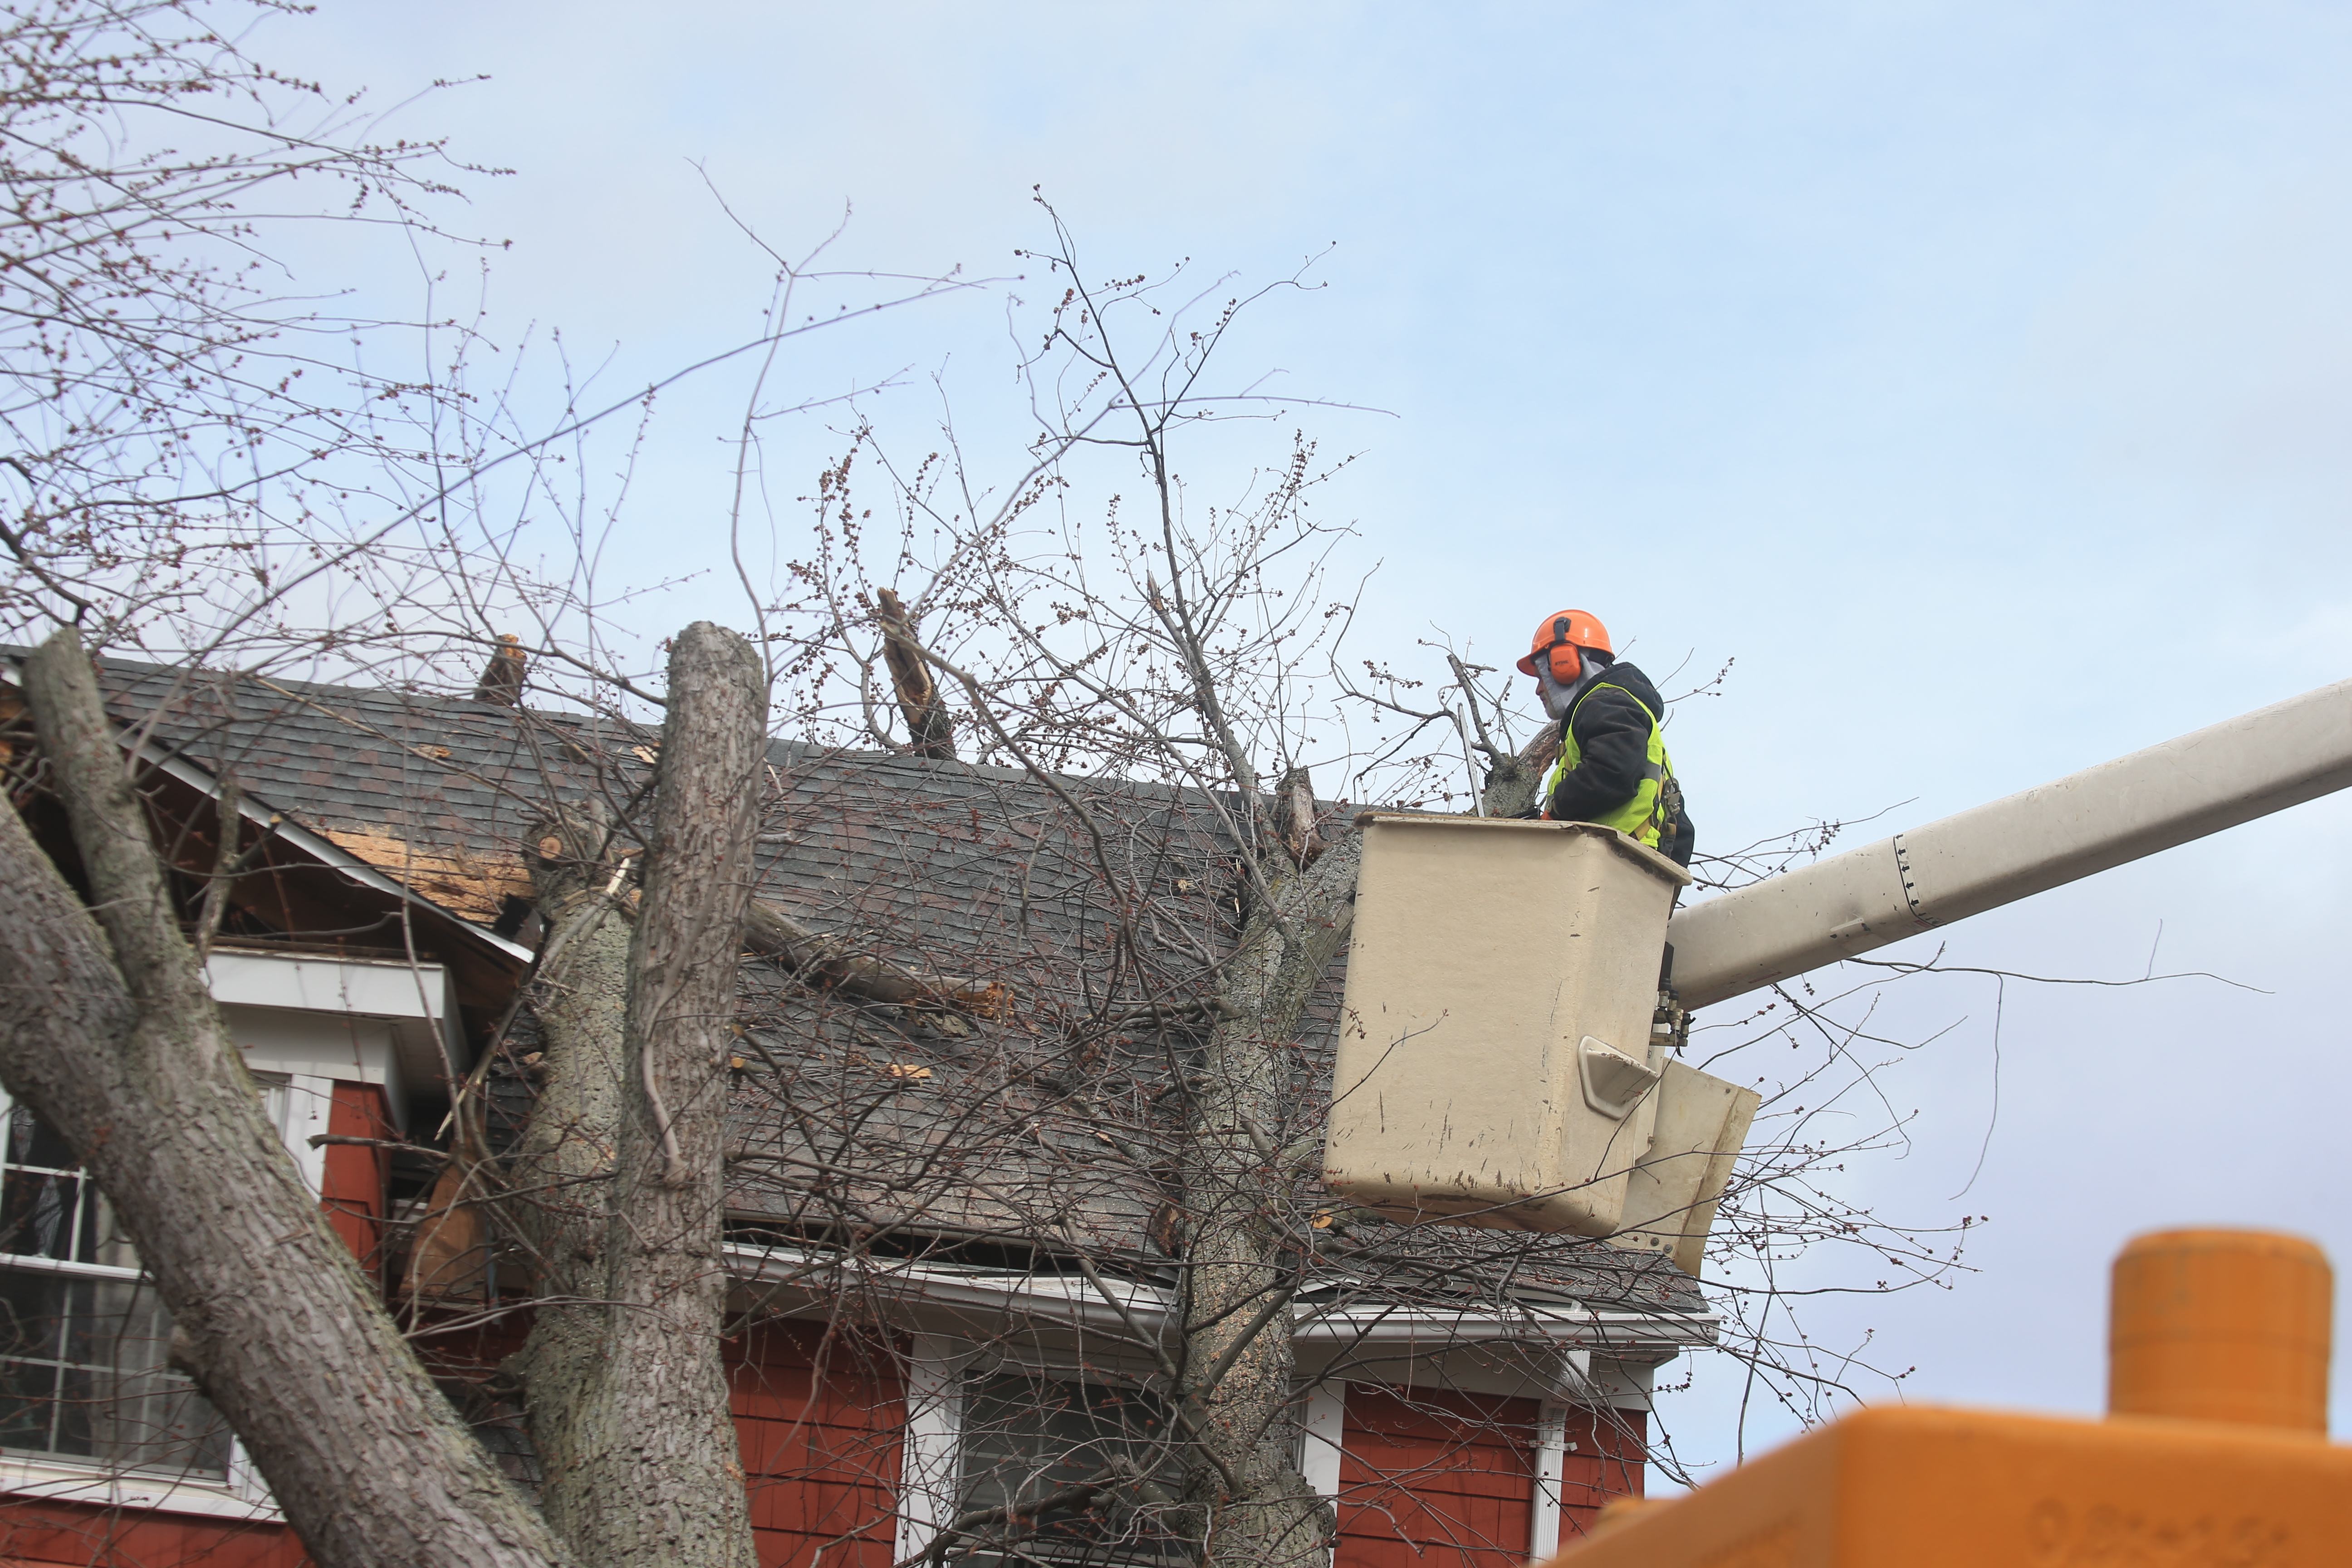 Crews from City of Lockport Forestry, Highway and Parks Department, with help from Clark Rigging & Rental Corporation,  removed a downed tree   from Howard Luff's home on Morrow Street,  in Lockport, N.Y. on  Wednesday,  March 8, 2017. (John Hickey / Buffalo News)